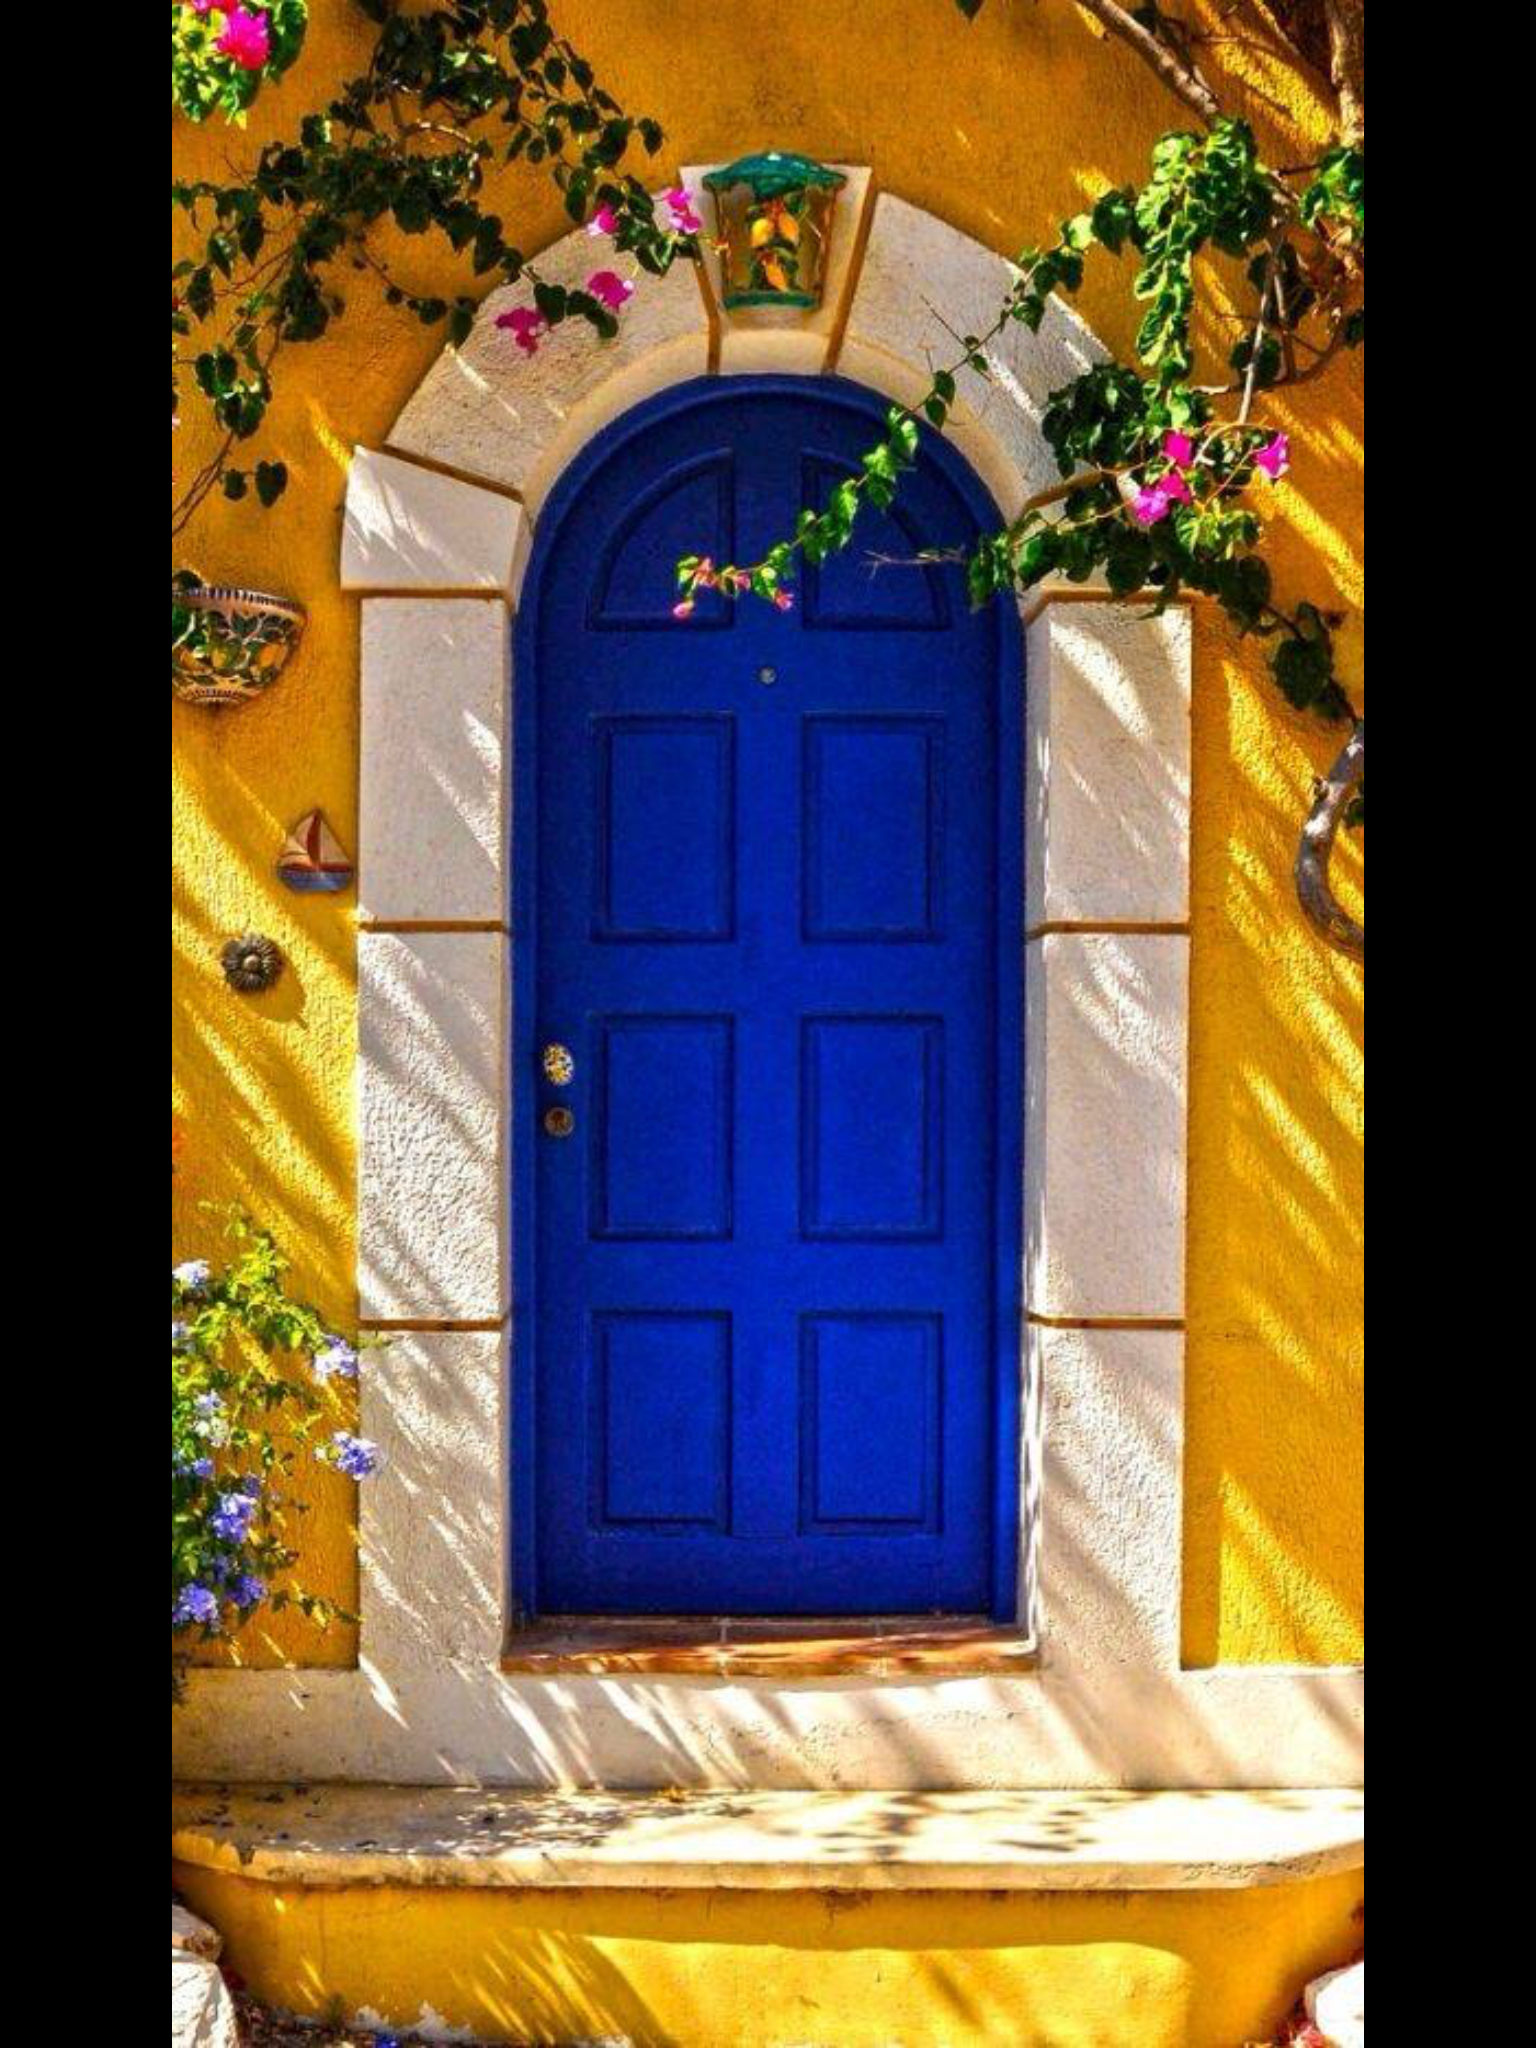 Pin by zeynep özdinç on Kapılar Pinterest Doors and Architecture